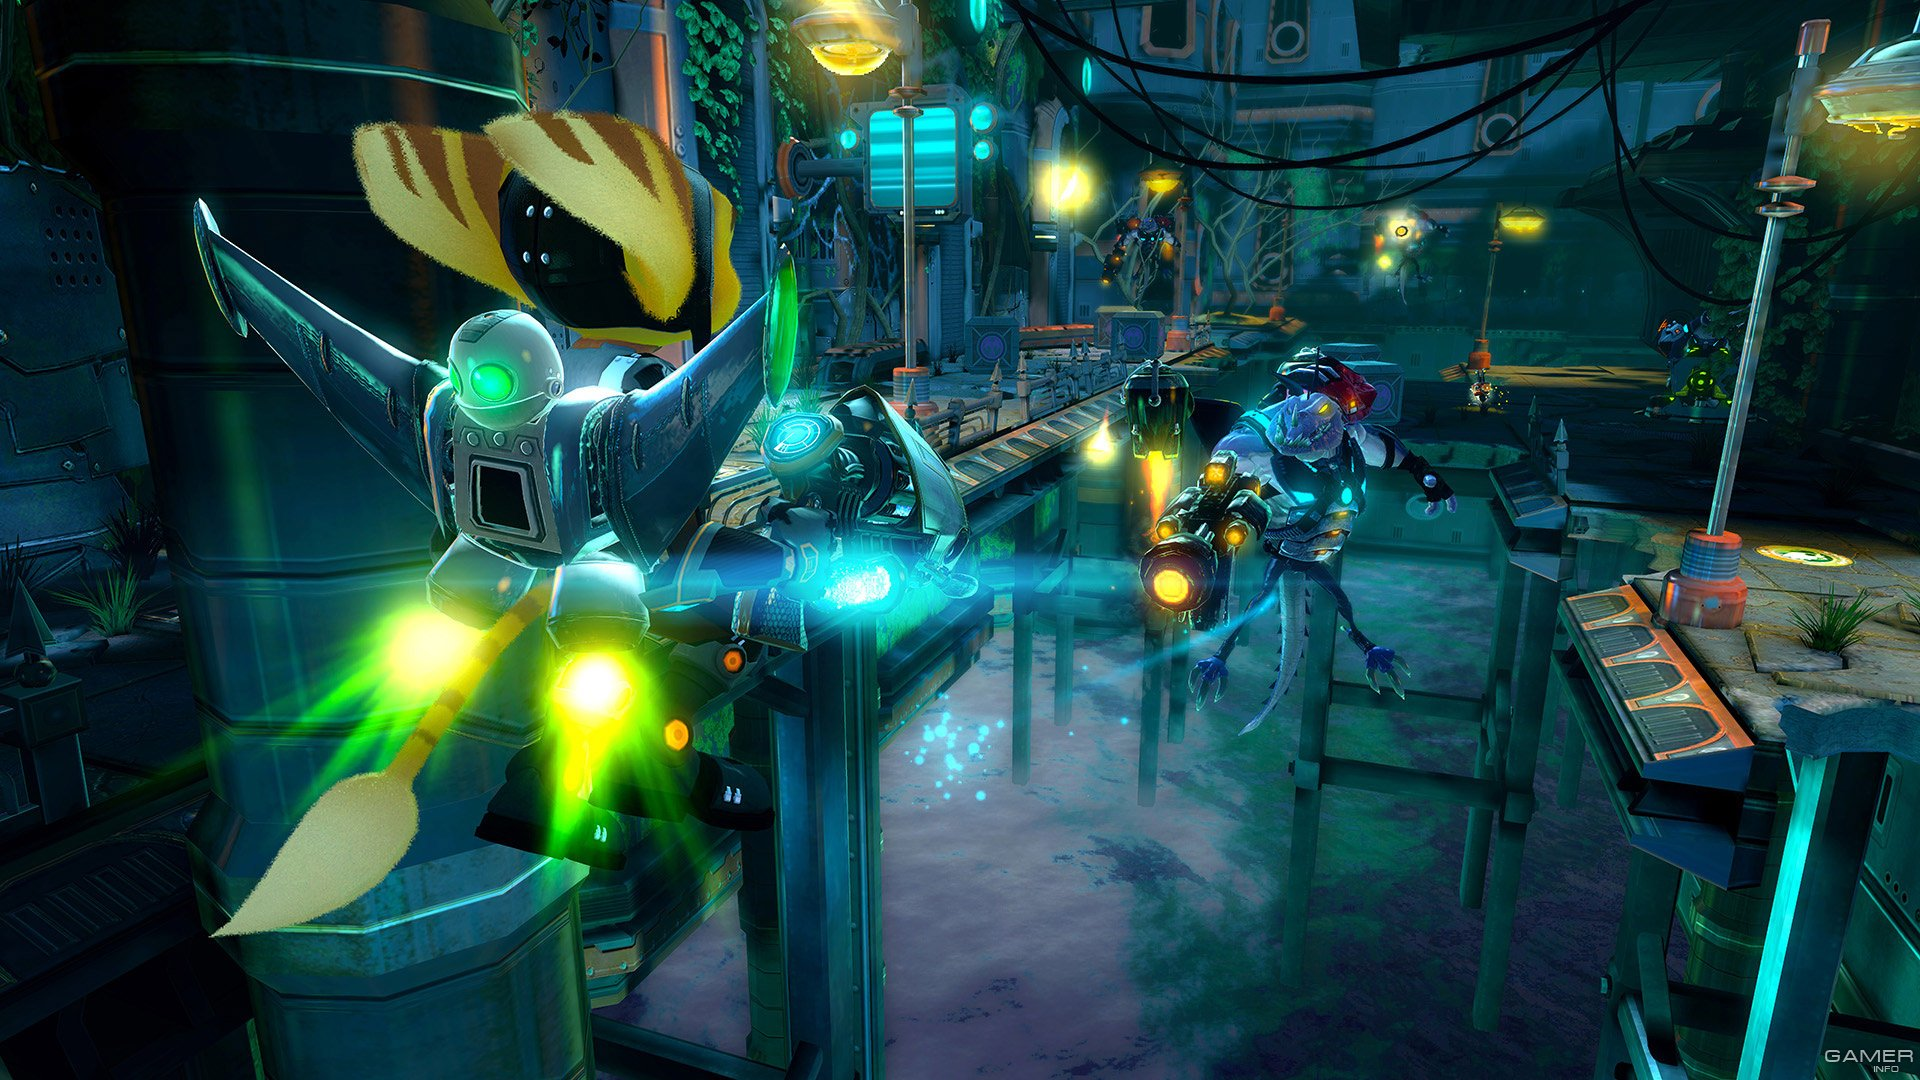 Ratchet Clank Into The Nexus 2013 Video Game